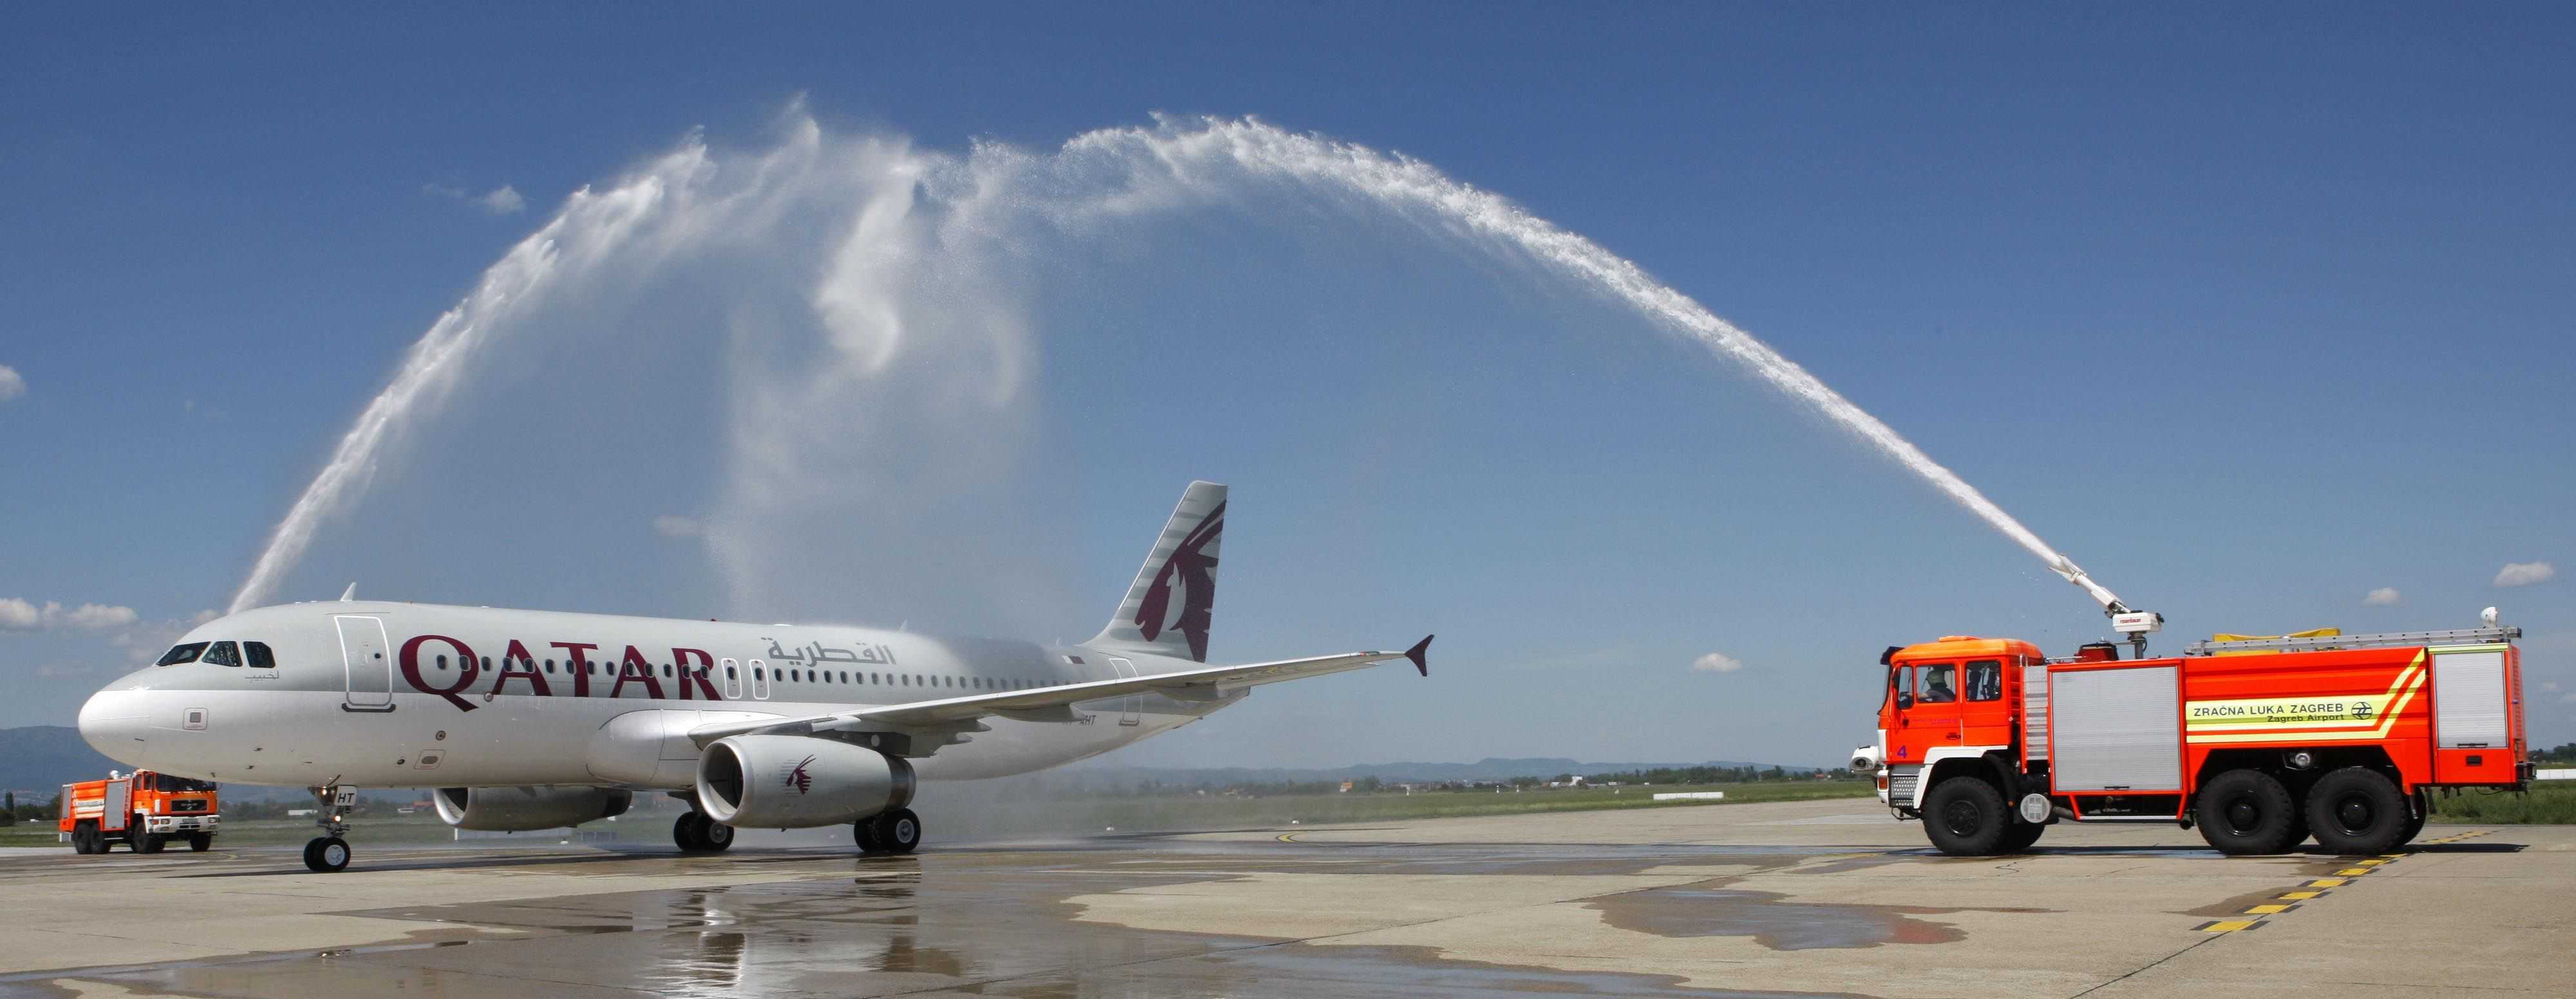 Qatar Airways Inaugural Flight From Doha To Zagreb Arrives In The Croatian Capital To A Traditional Water Salute Welcome Qatar Airways Qatar Zagreb